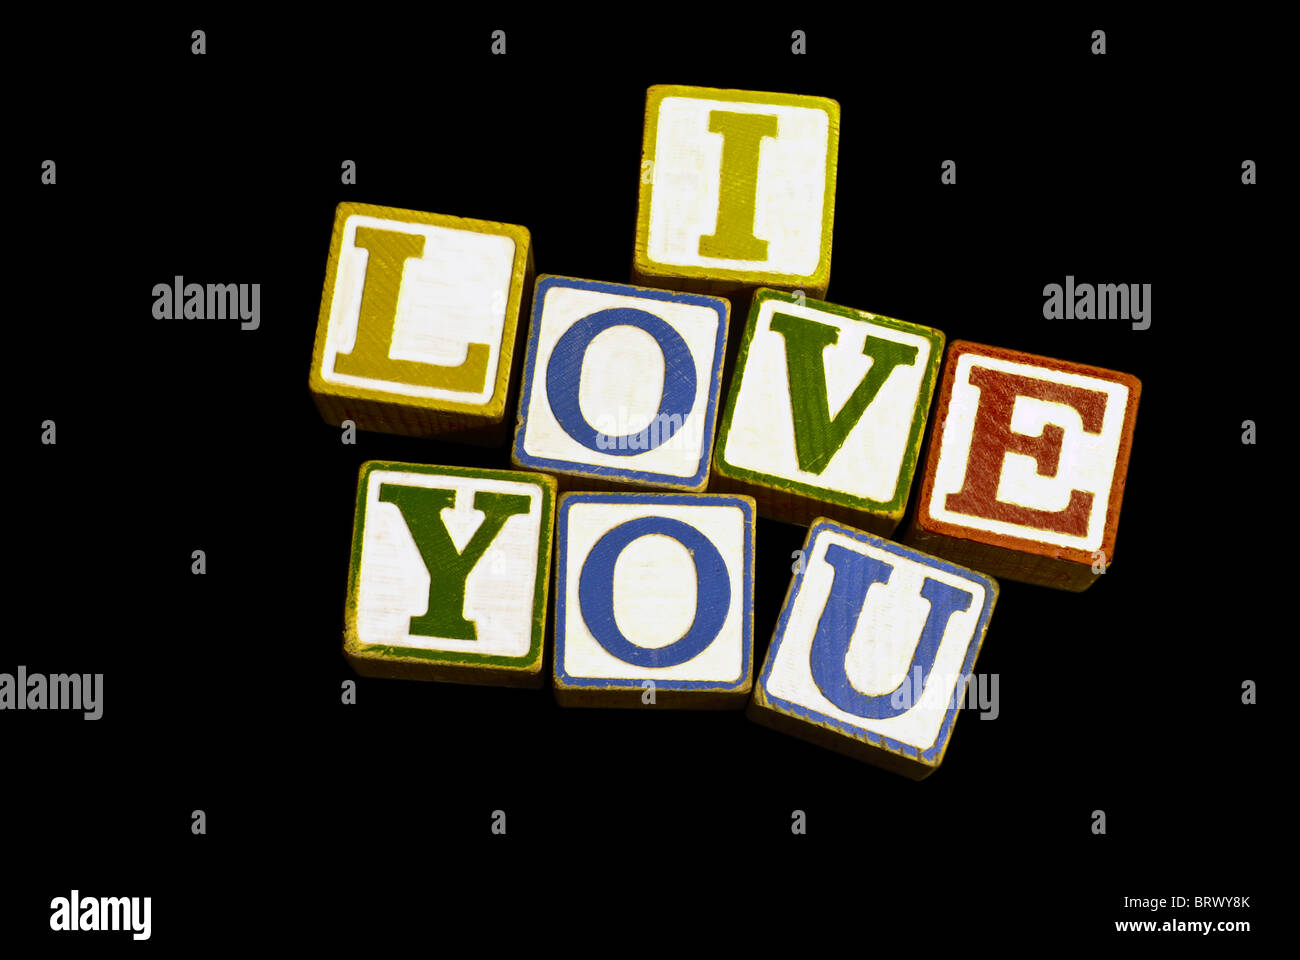 Wooden Toy Blocks Spelling I Love You Stock Photo 31917667 Alamy